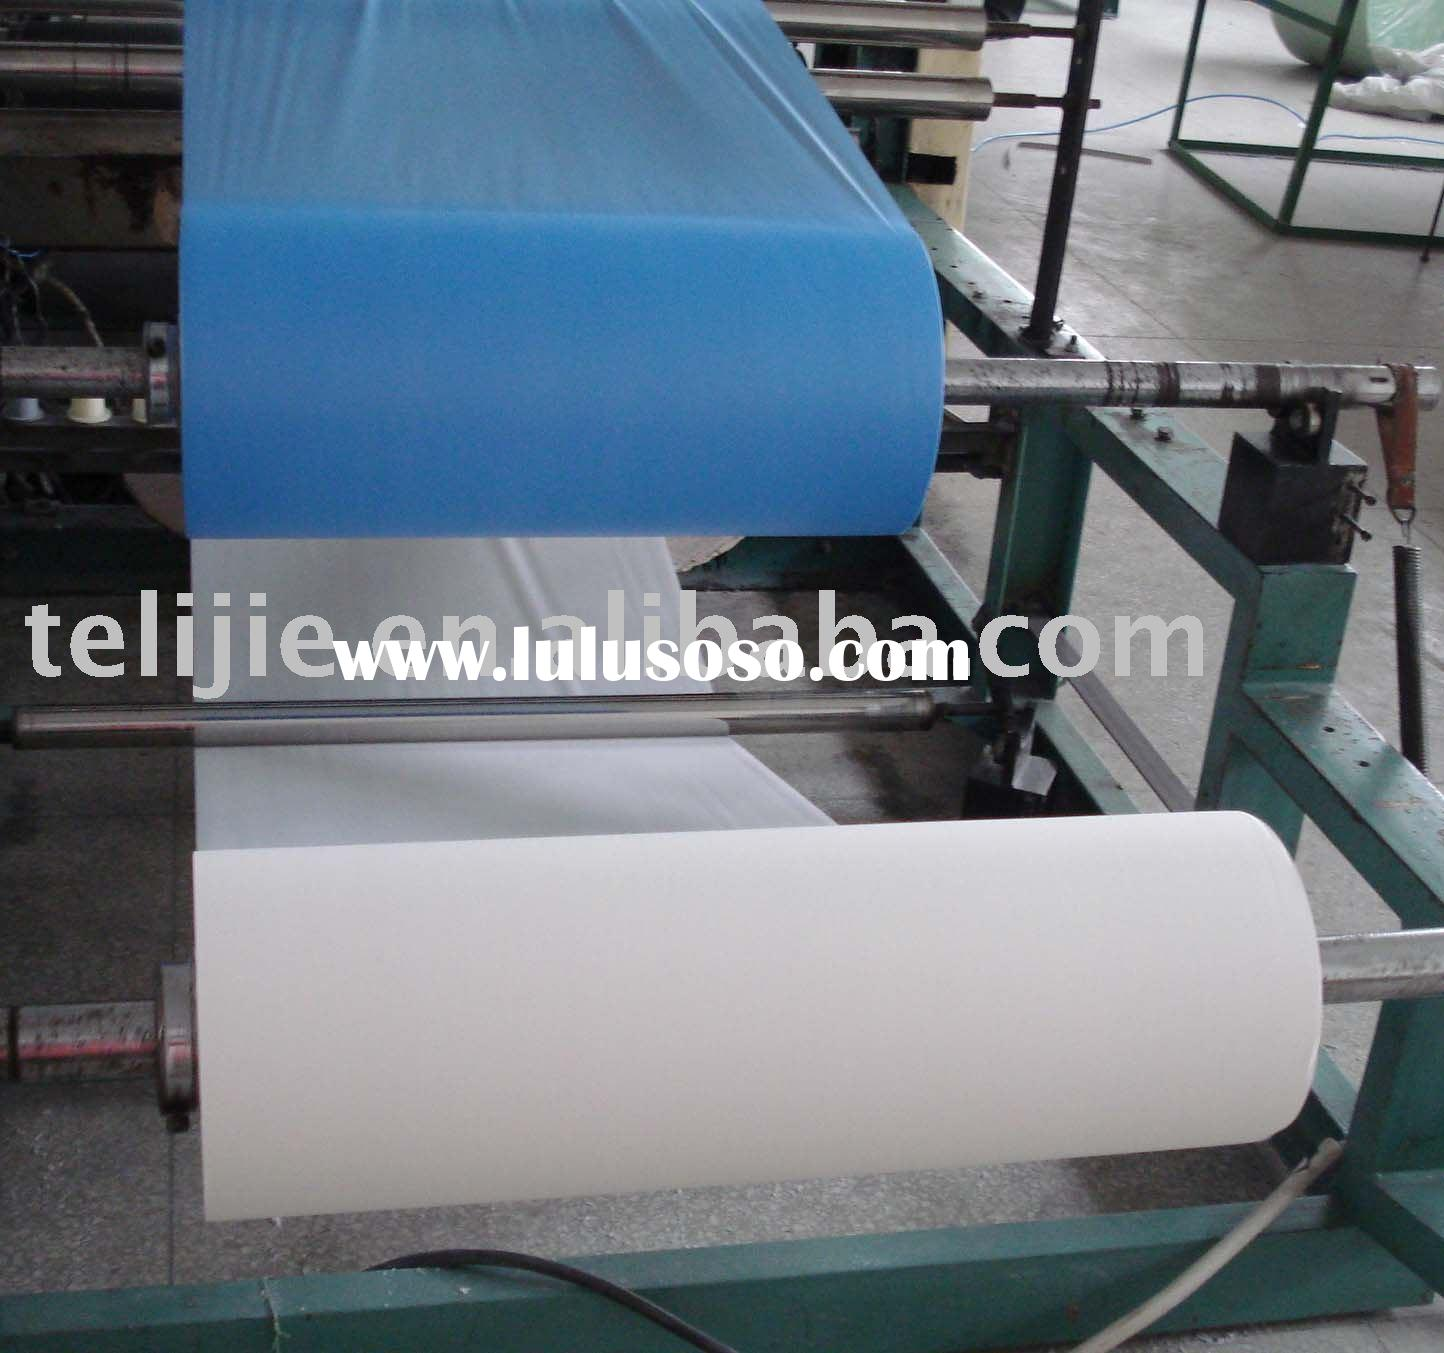 examination paper bed-sheet roll with competitive price